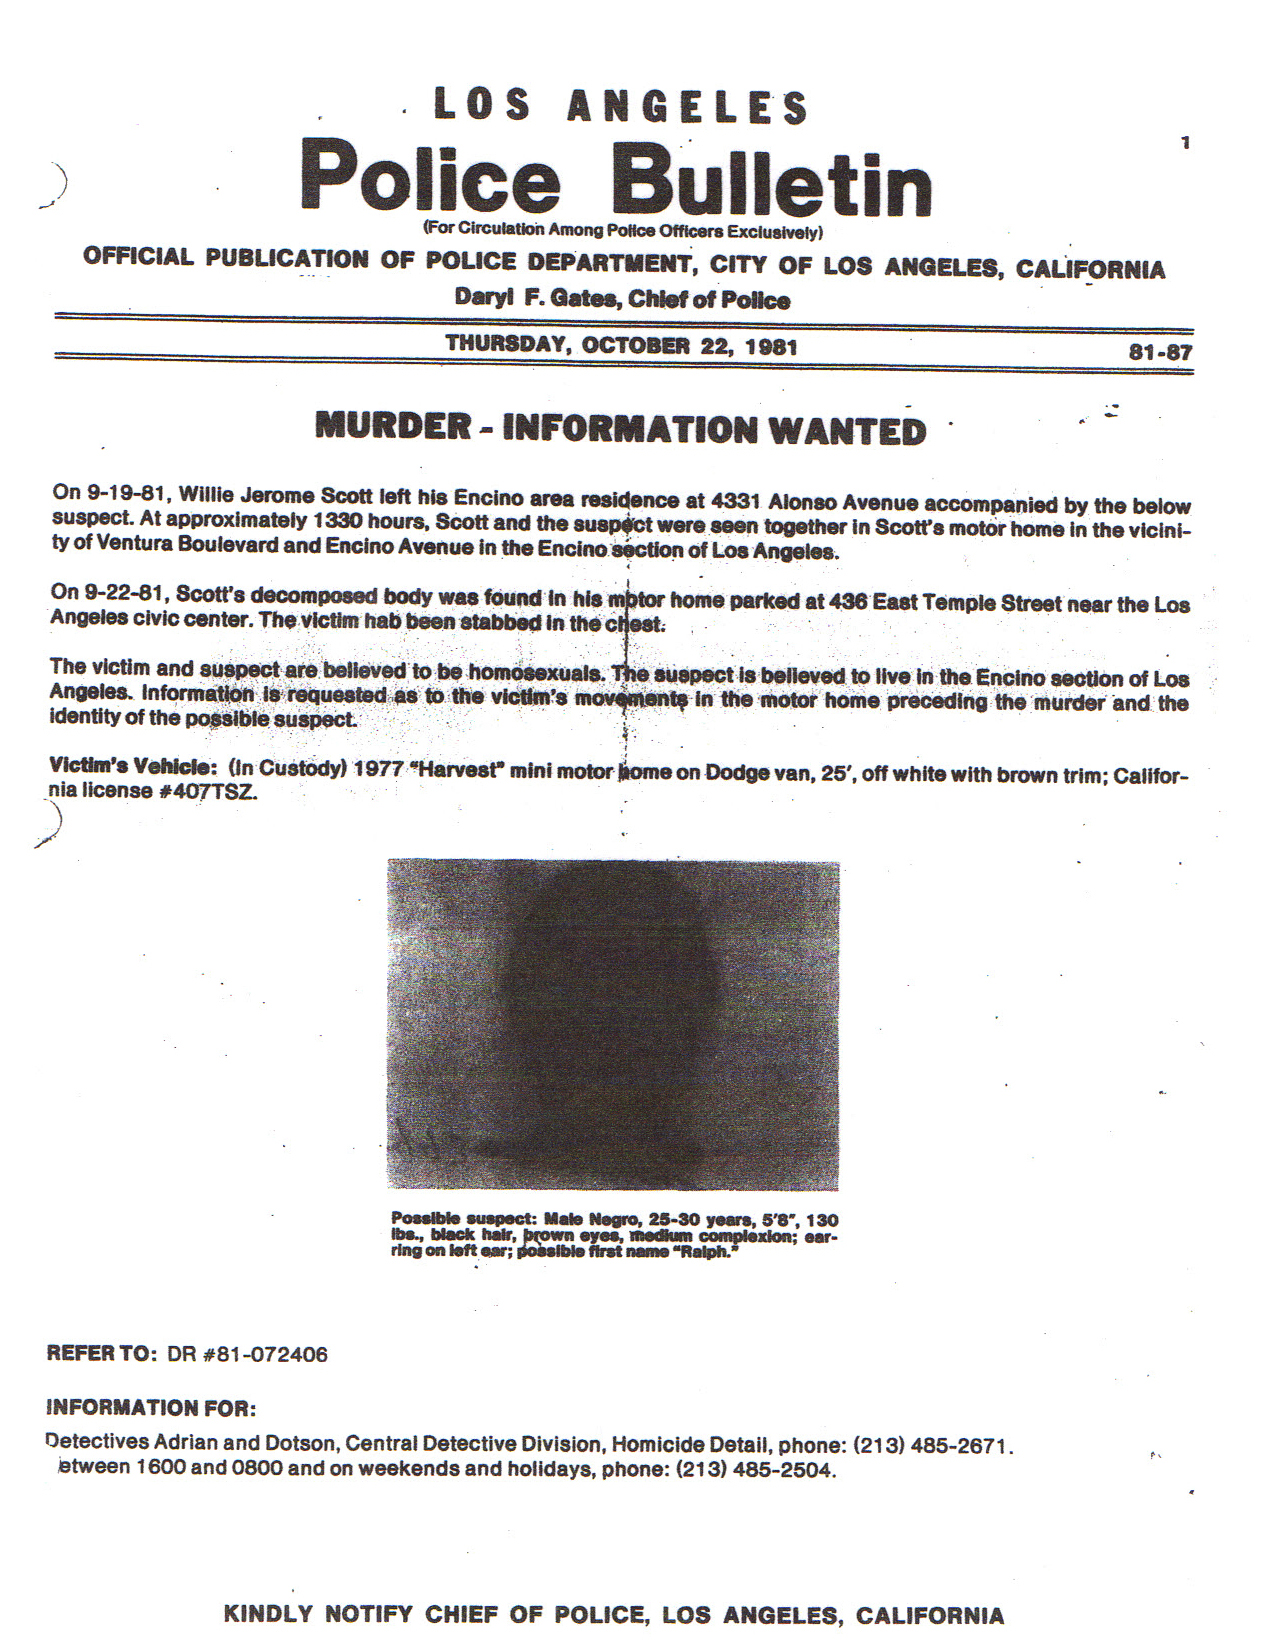 LAPD-1981-wanted-poster-seeking-suspect-in-murder-of-Patricia-Wrights-husband-Jerome-Scott, Three Strikes holds dying innocent woman behind bars: Justice for Patricia Wright and her family!, Behind Enemy Lines